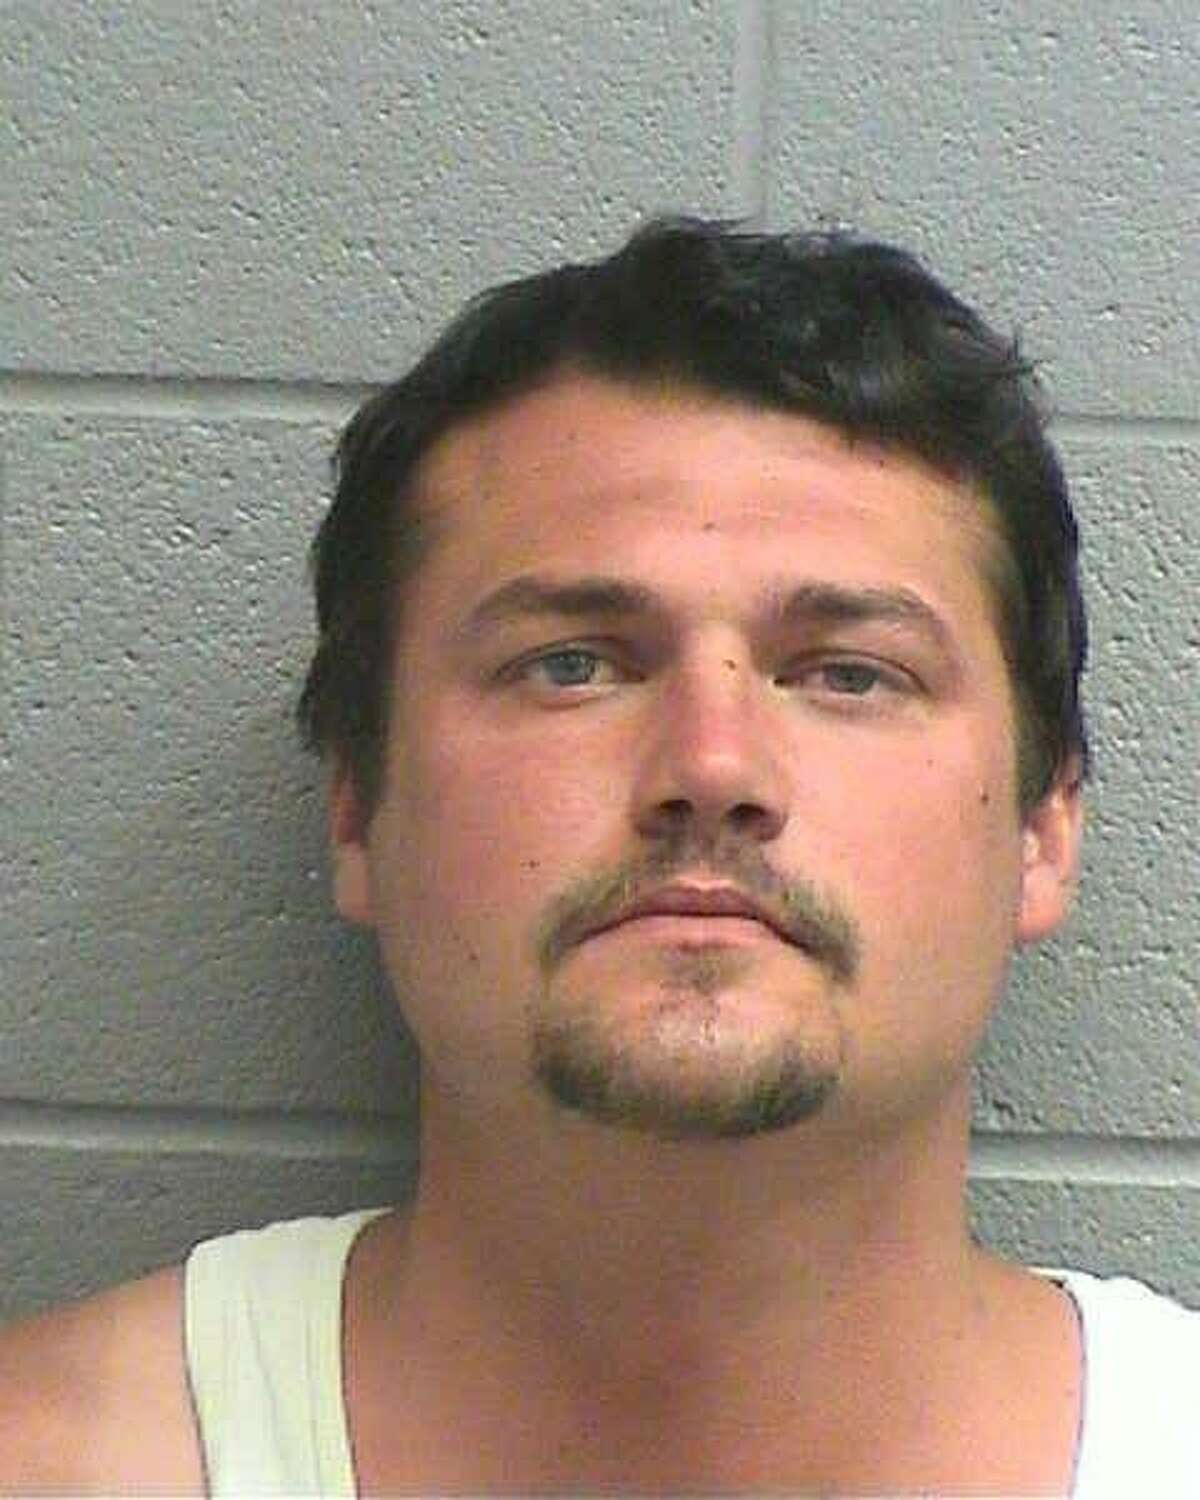 John David Rydell, 28, of Midland, was charged June 13 with a second-degree felony charge of burglary of a habitation, class A misdemeanor charges of unlawful restraint and interfering with an emergency call, class B misdemeanor charges of violation of probation and criminal trespassing, and class C misdemeanor charges of public intoxication and assault by threat or contact. Rydell broke into a woman's home, left a threatening message with a broken DVD, and tried to prevent her from both leaving the home and calling 911, according to court documents. If convicted, Rydell faces up to 20 years in prison for the felony charge and up to one year for each class A misdemeanor charge.